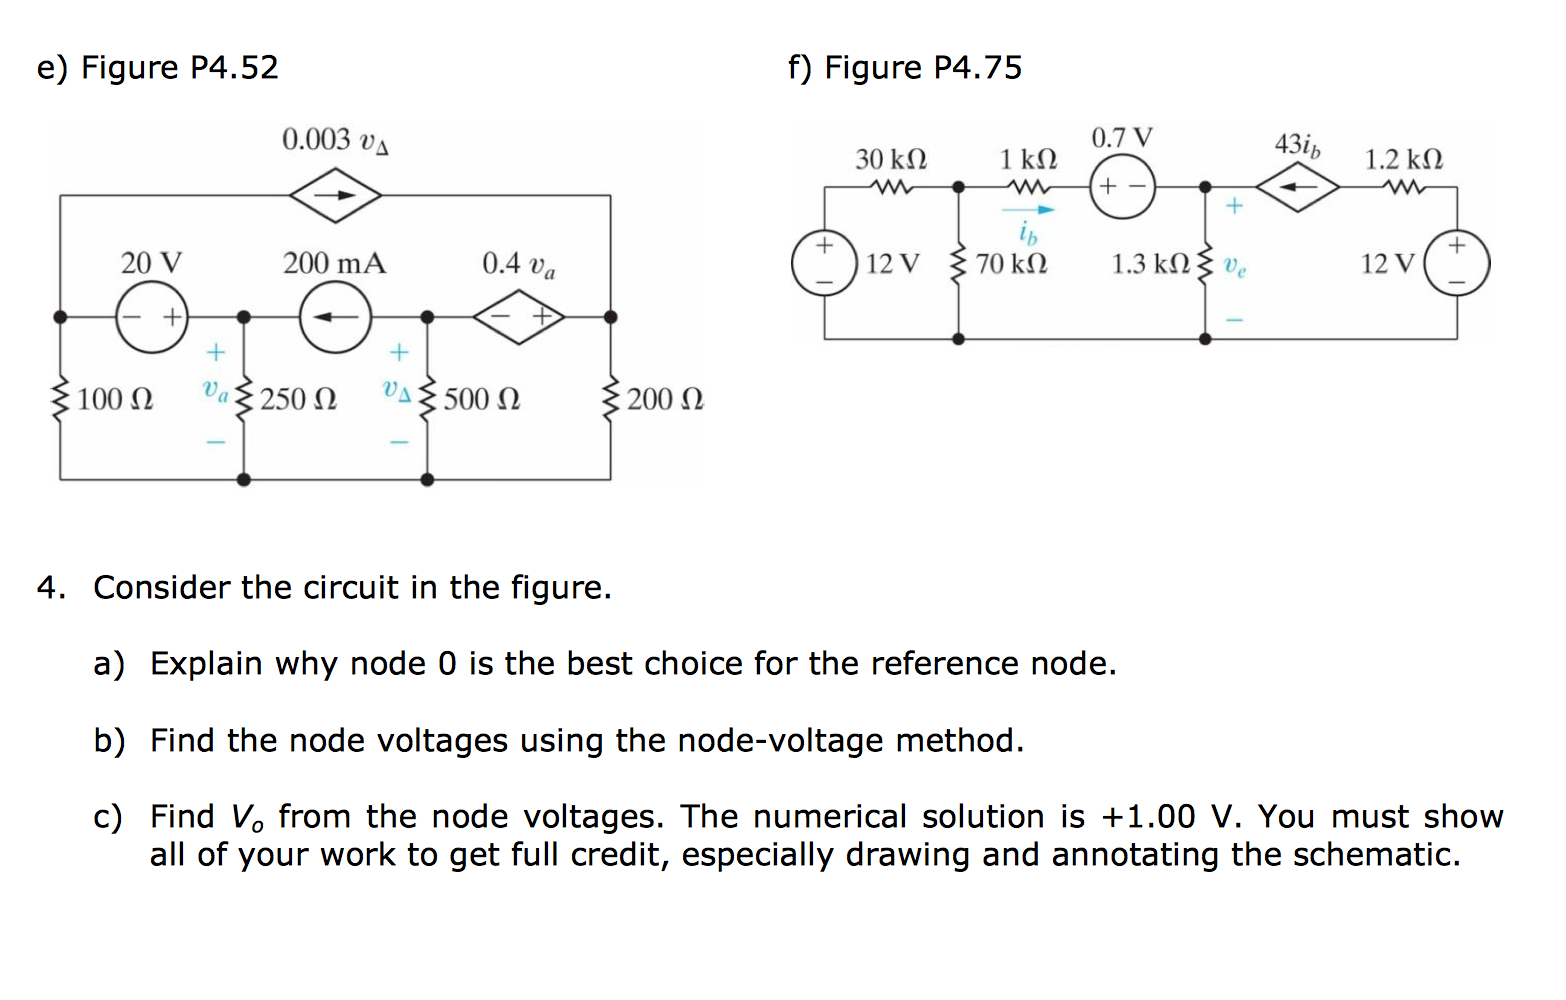 Consider the circuit in the figure. Explain why